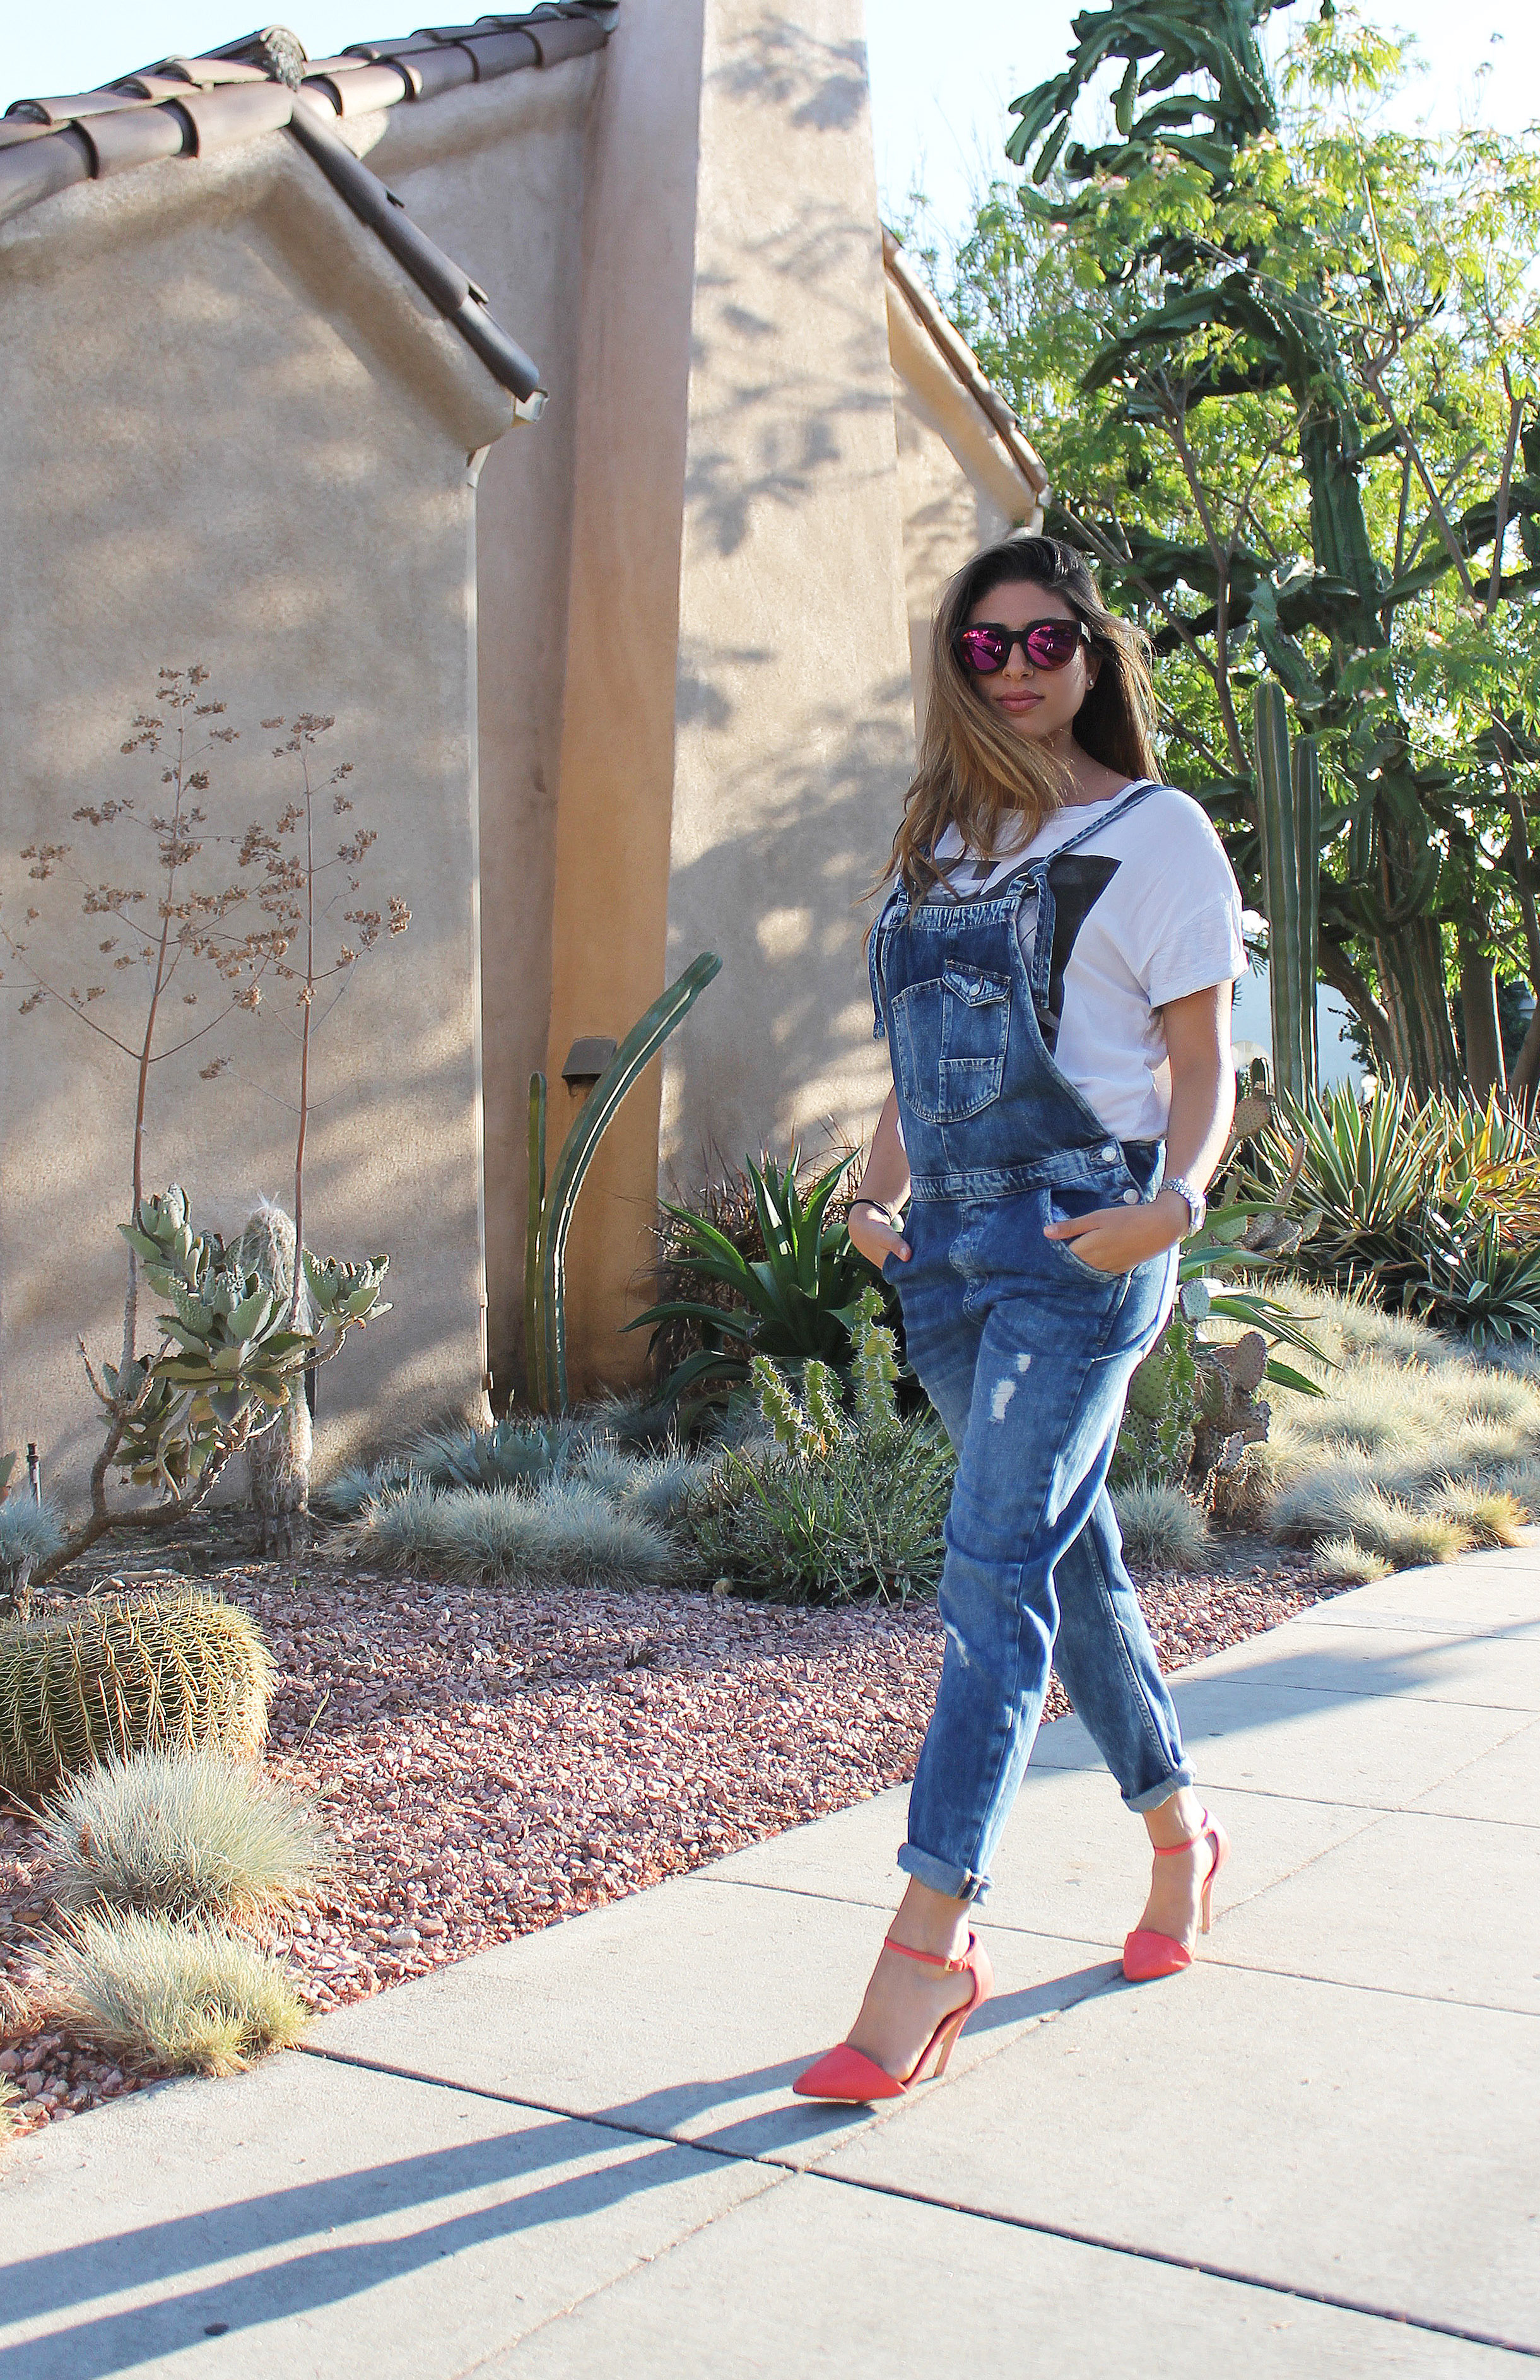 mel-ronnie-overalls-heels-outfit-1.JPG